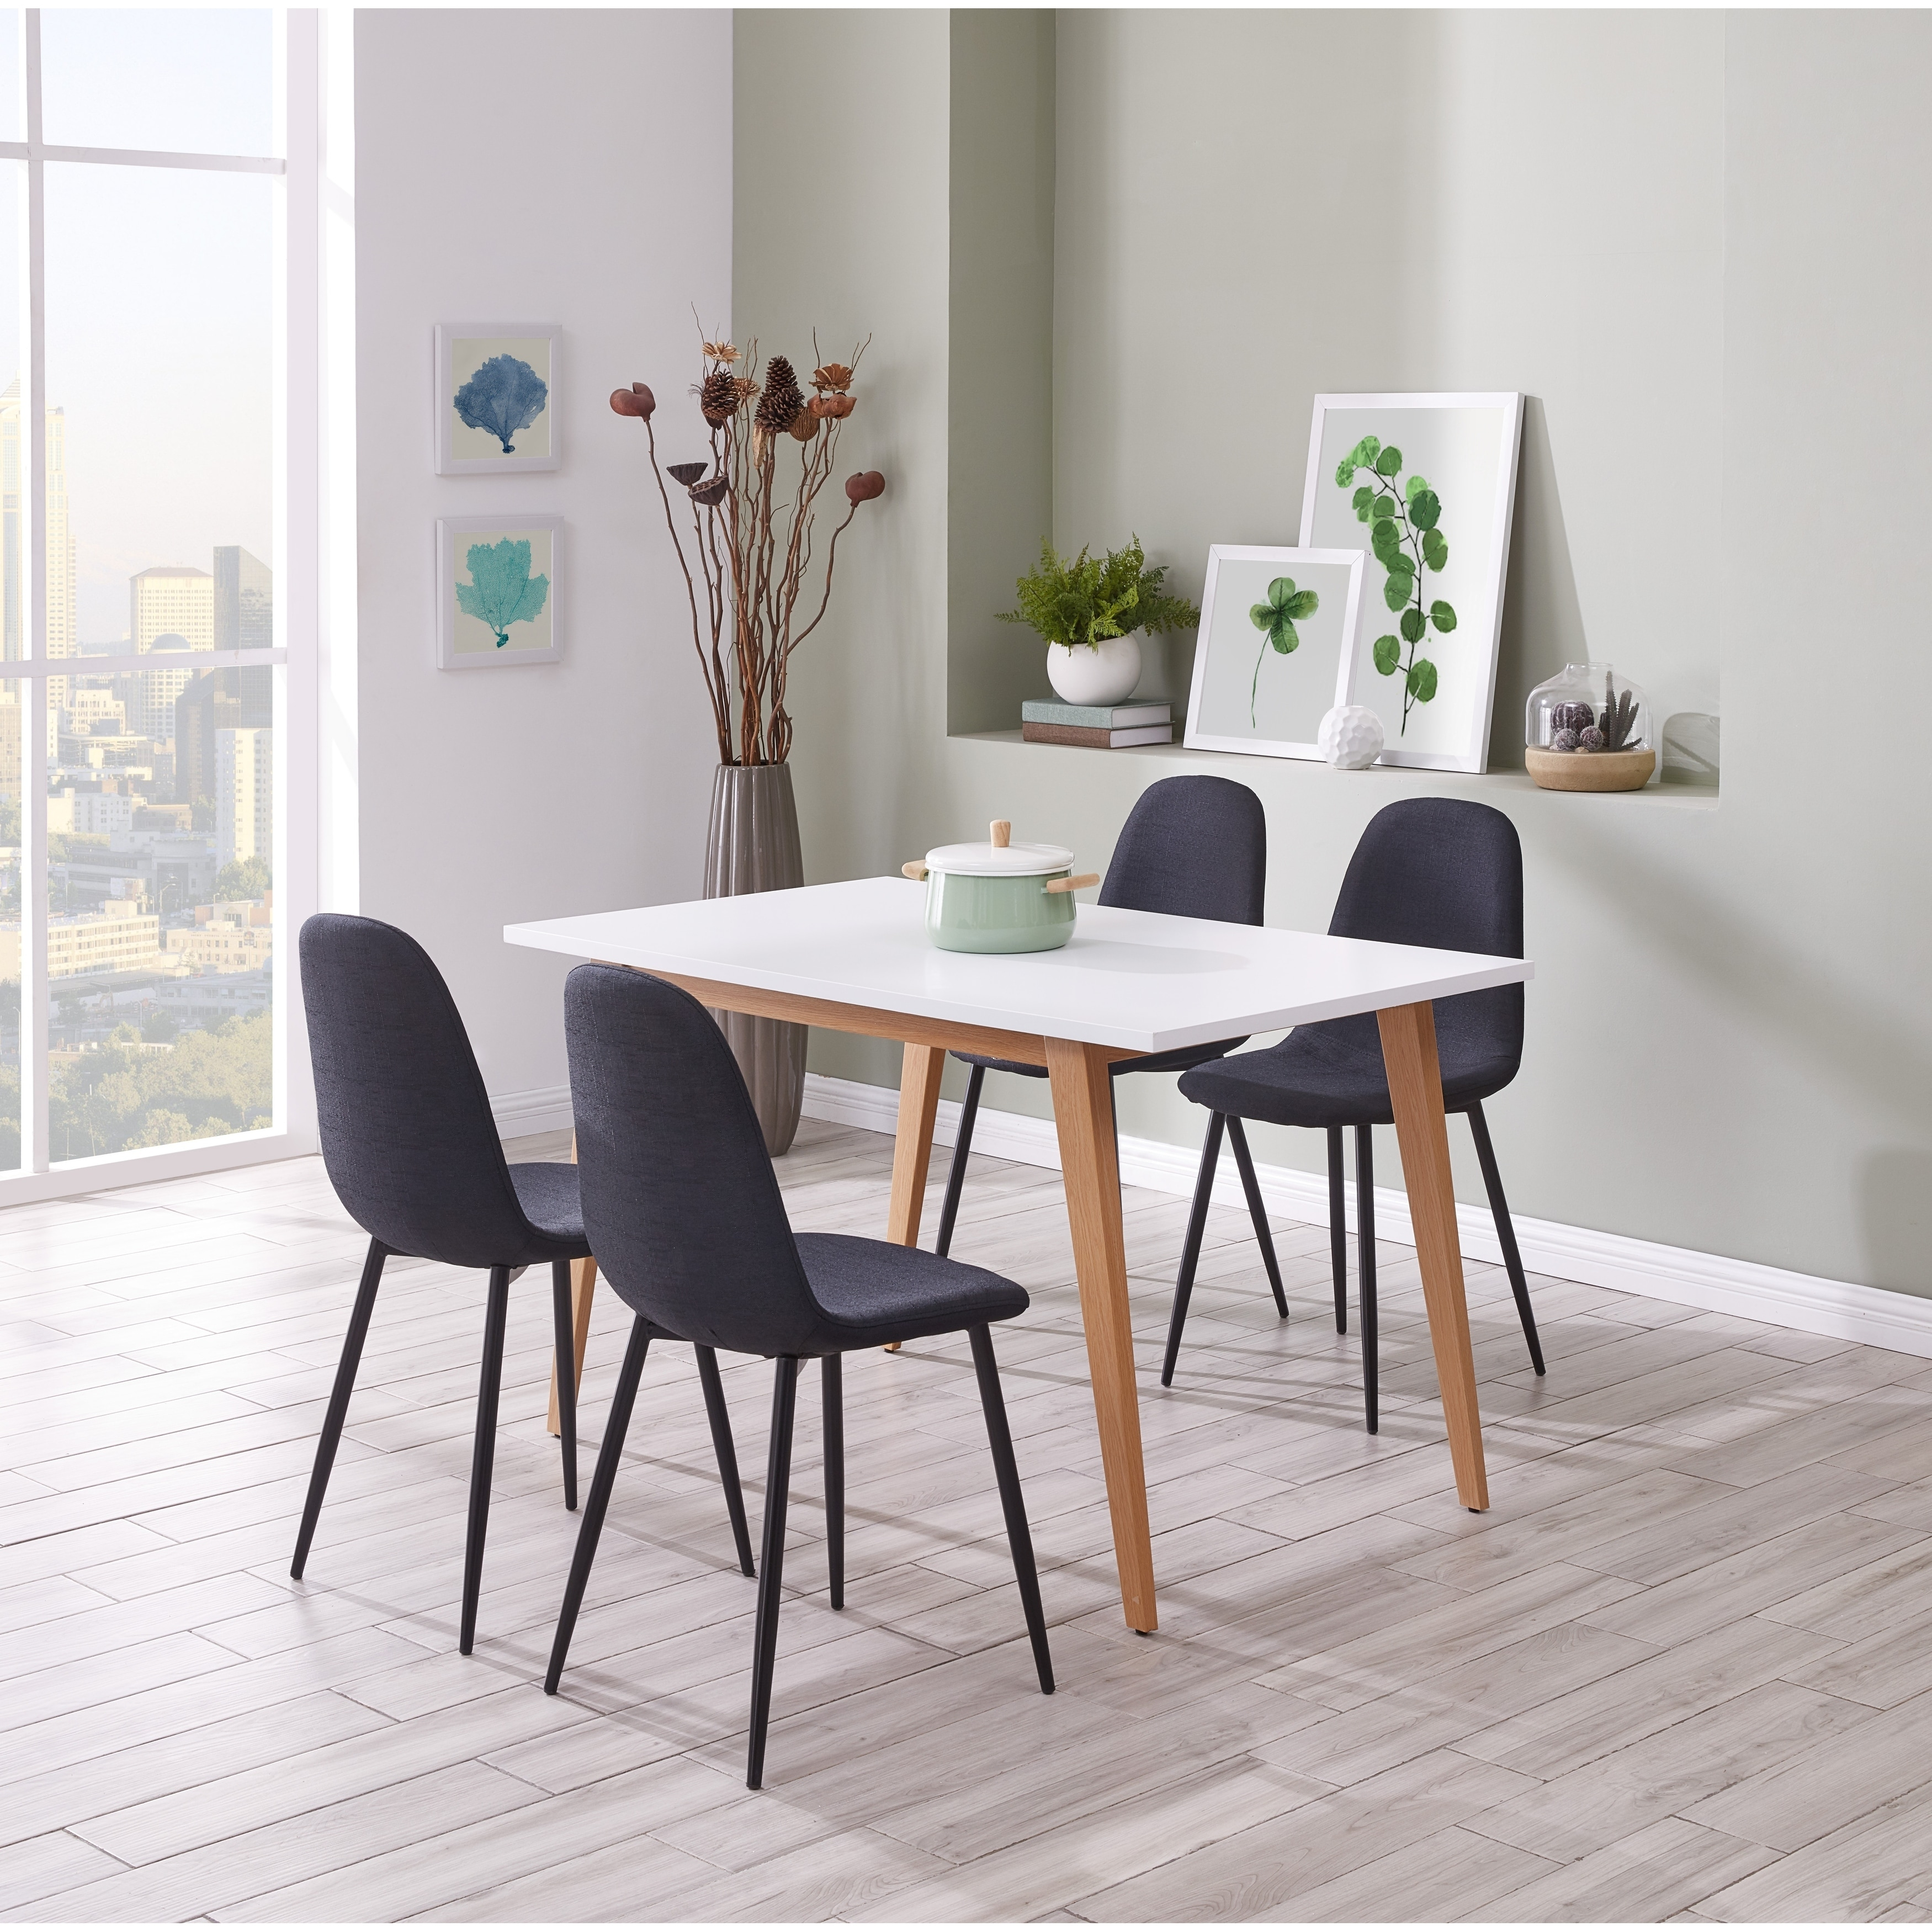 Ids Online Contemporary Norway Simplicity Style Mdf Dining Table With Wooden Skin Cover Metal Leg For 6 Rectangular White